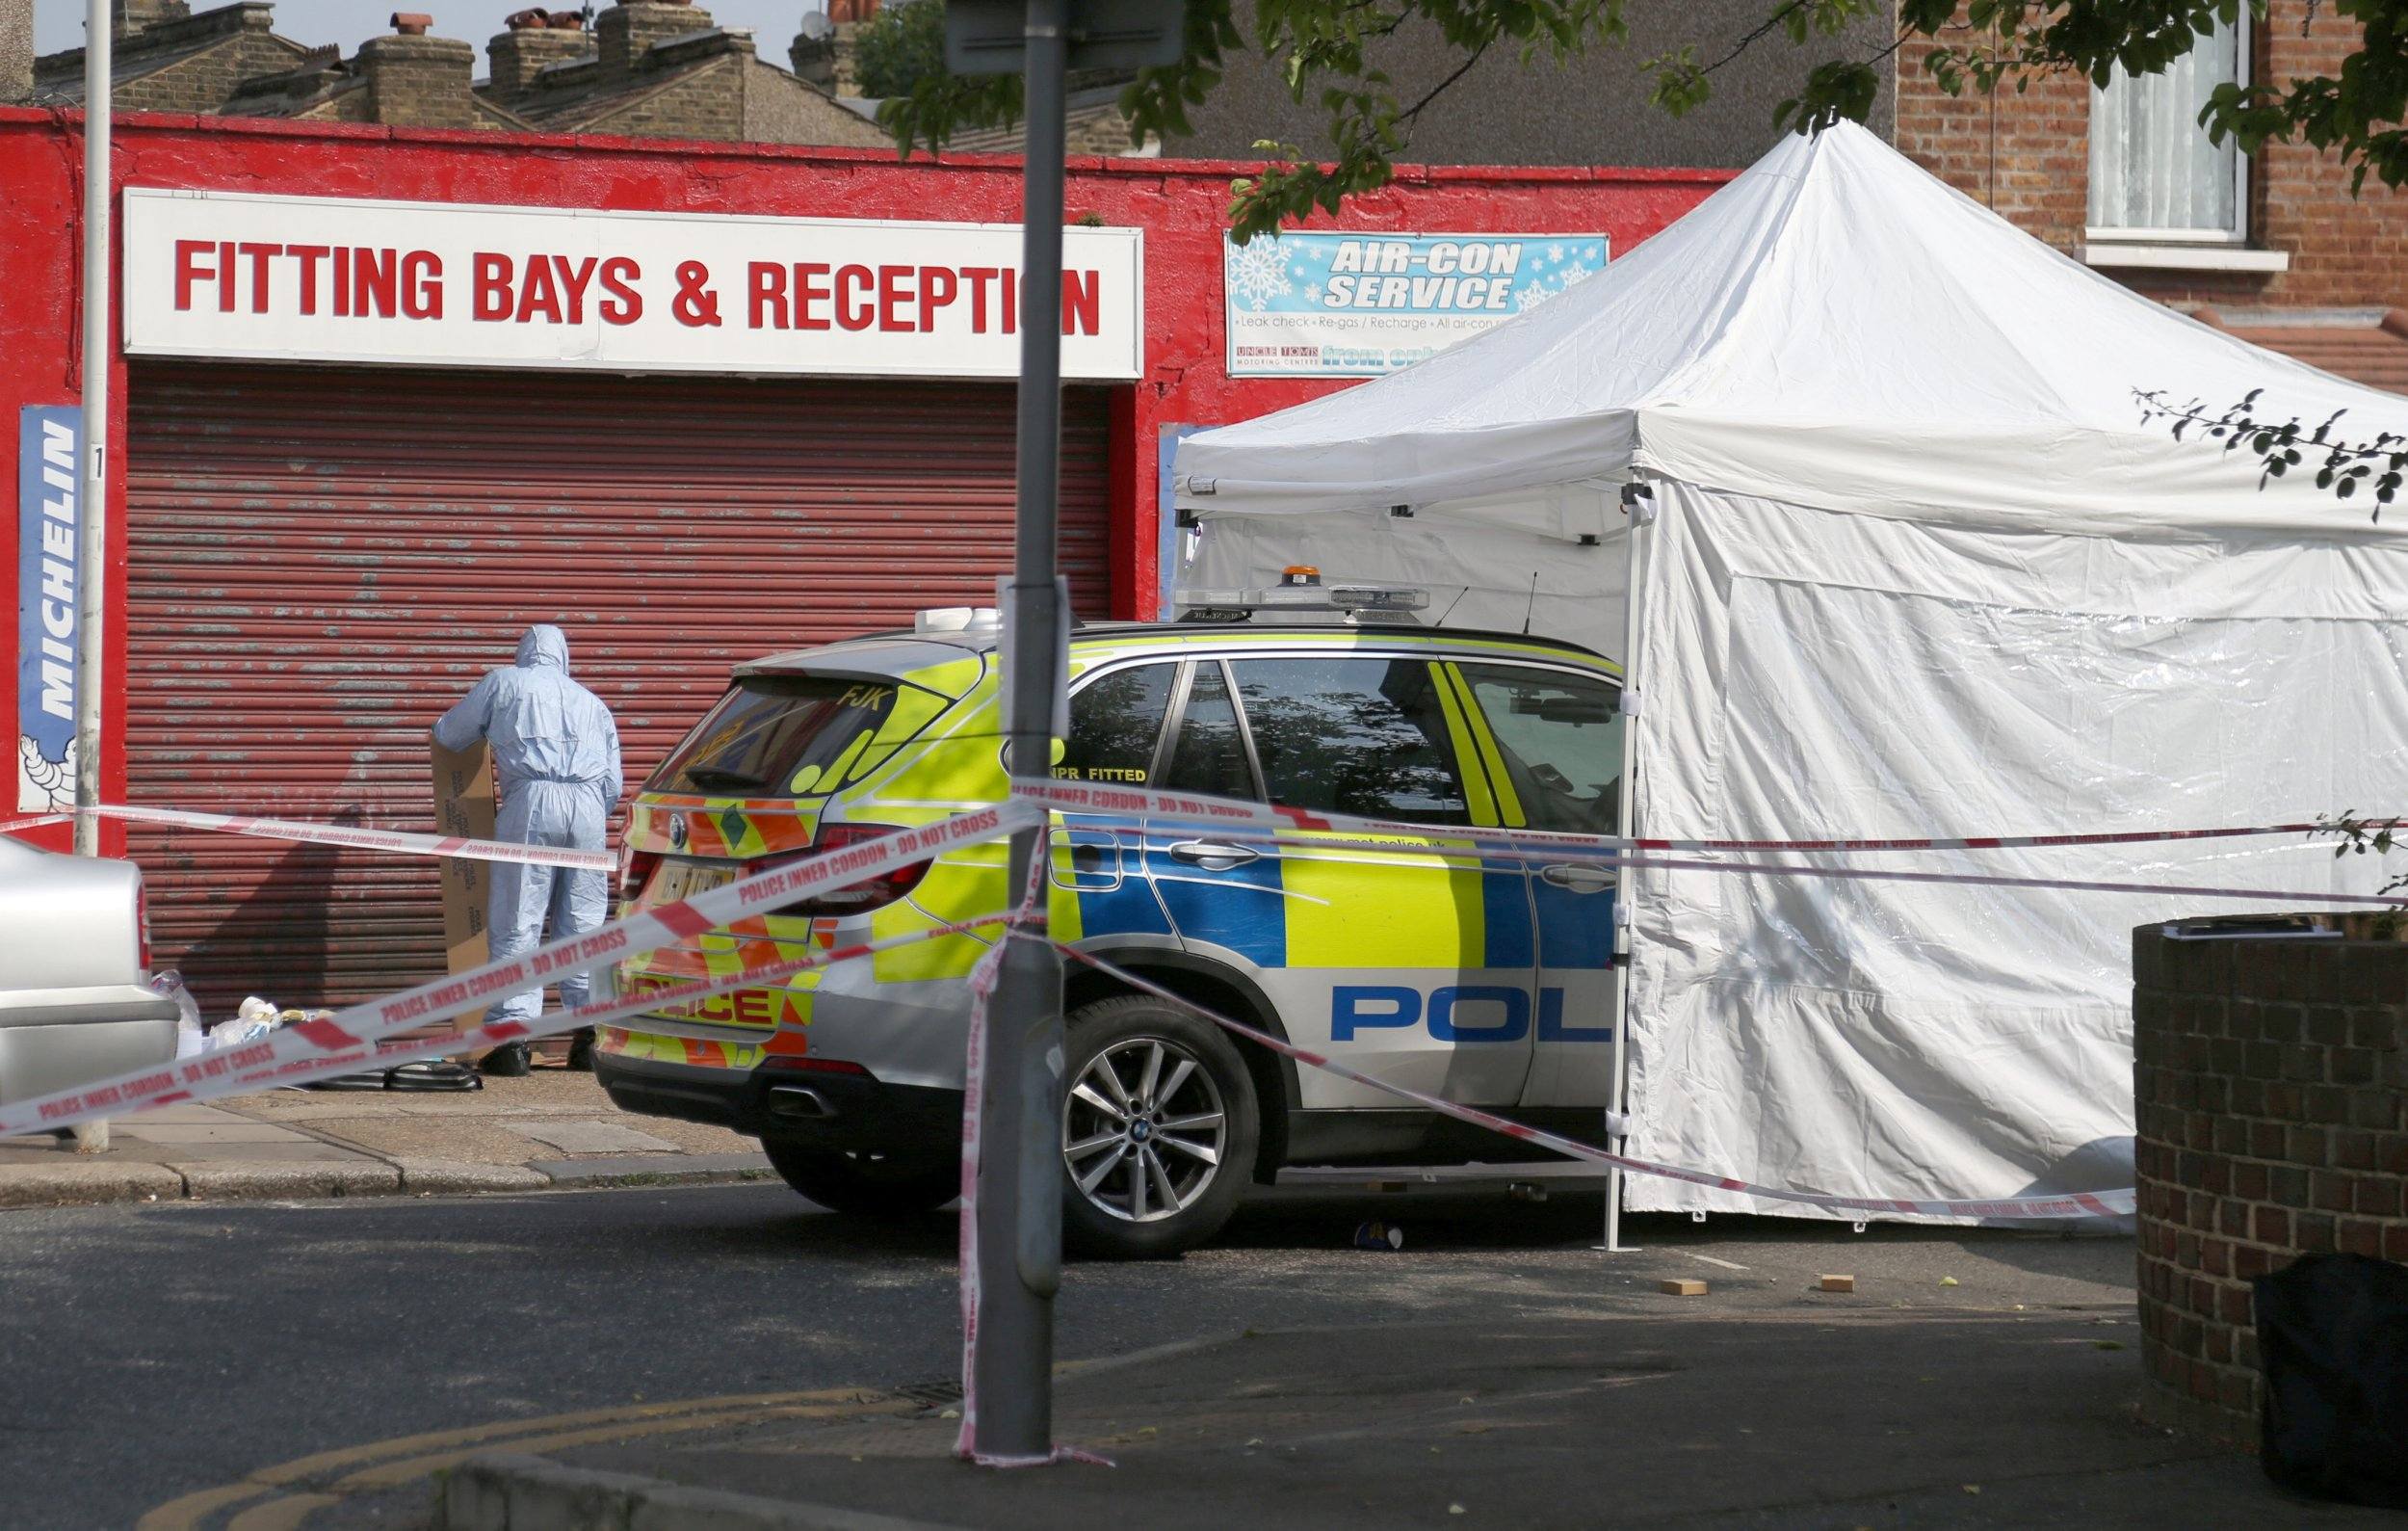 """Police and forensic officers on the scene at Bective Road, Forest Gate, London 27 July 2018 .,following a shootout. Armed police were in a shootout with three men following a car chase in east London. Three people have been arrested on suspicion of attempted murder after shots were fired towards officers. Police were called to Lascelles Close in Leytonstone at 10.45pm on Thursday to reports of suspects seen with a gun. Armed officers attended the scene and, a short time later, a vehicle was seen nearby which failed to stop for officers. The suspects were arrested in Bective Road, Forest Gate, more than a mile away from where officers were initially called. Scotland Yard said """"a number of shots were fired towards officers"""" during a pursuit, and police also fired weapons."""